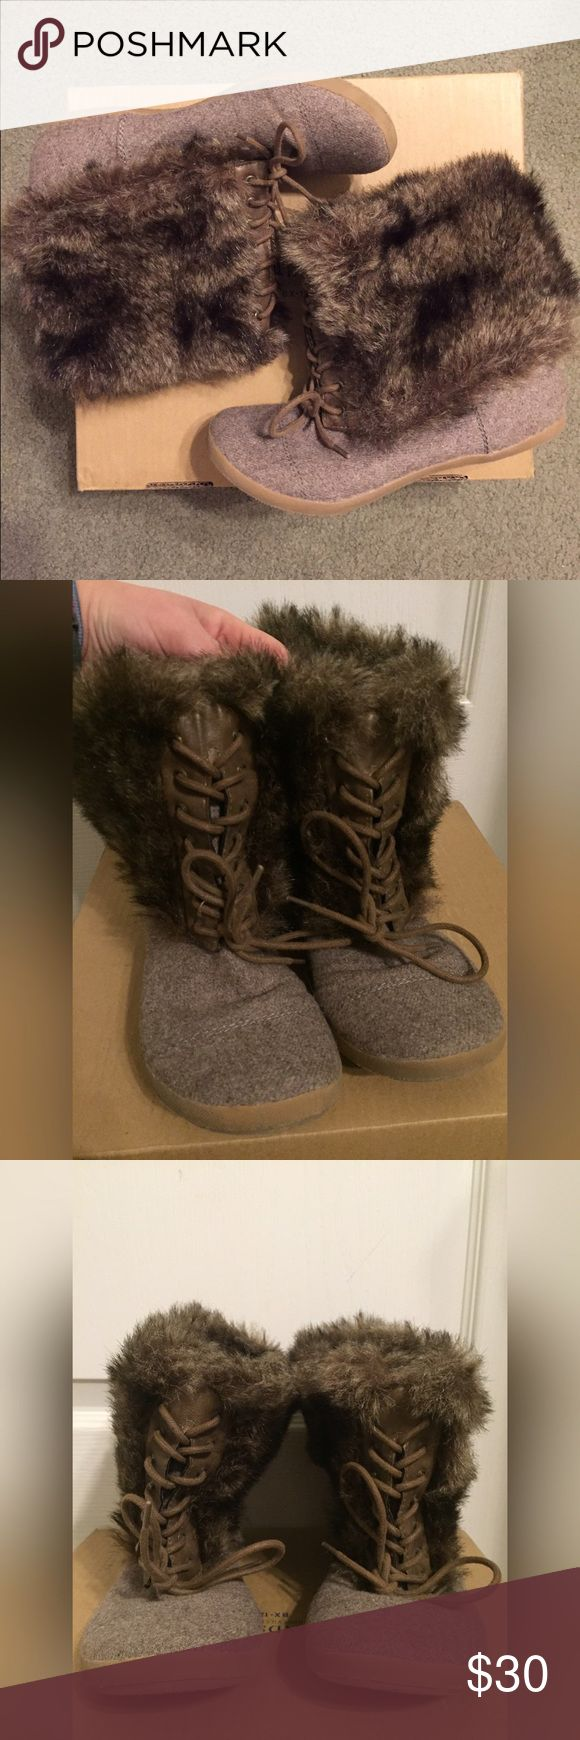 Big Buddha Fur Boots Comfortable and warm brown lace up fur boots, excellent condition only worn once. Can also be turned inside out, hiding all the fur and leaving a plain taupe lace up boot. Big Buddha Shoes Winter & Rain Boots